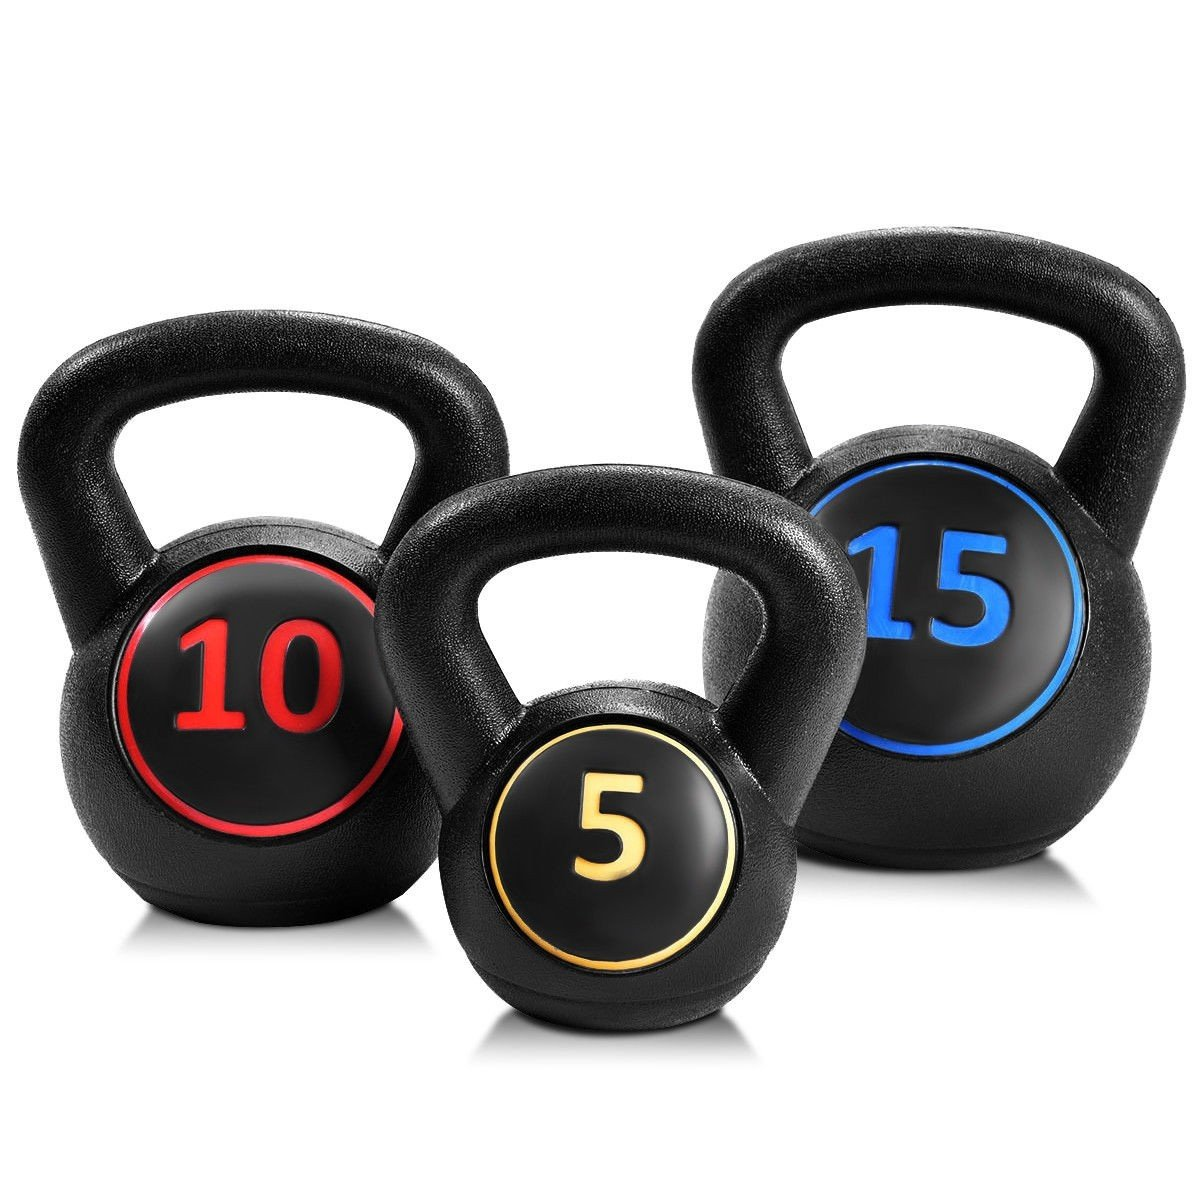 MD Group 3 pcs 5 10 15lbs Kettlebell Kettle Bell Weight Set by MD Group (Image #6)